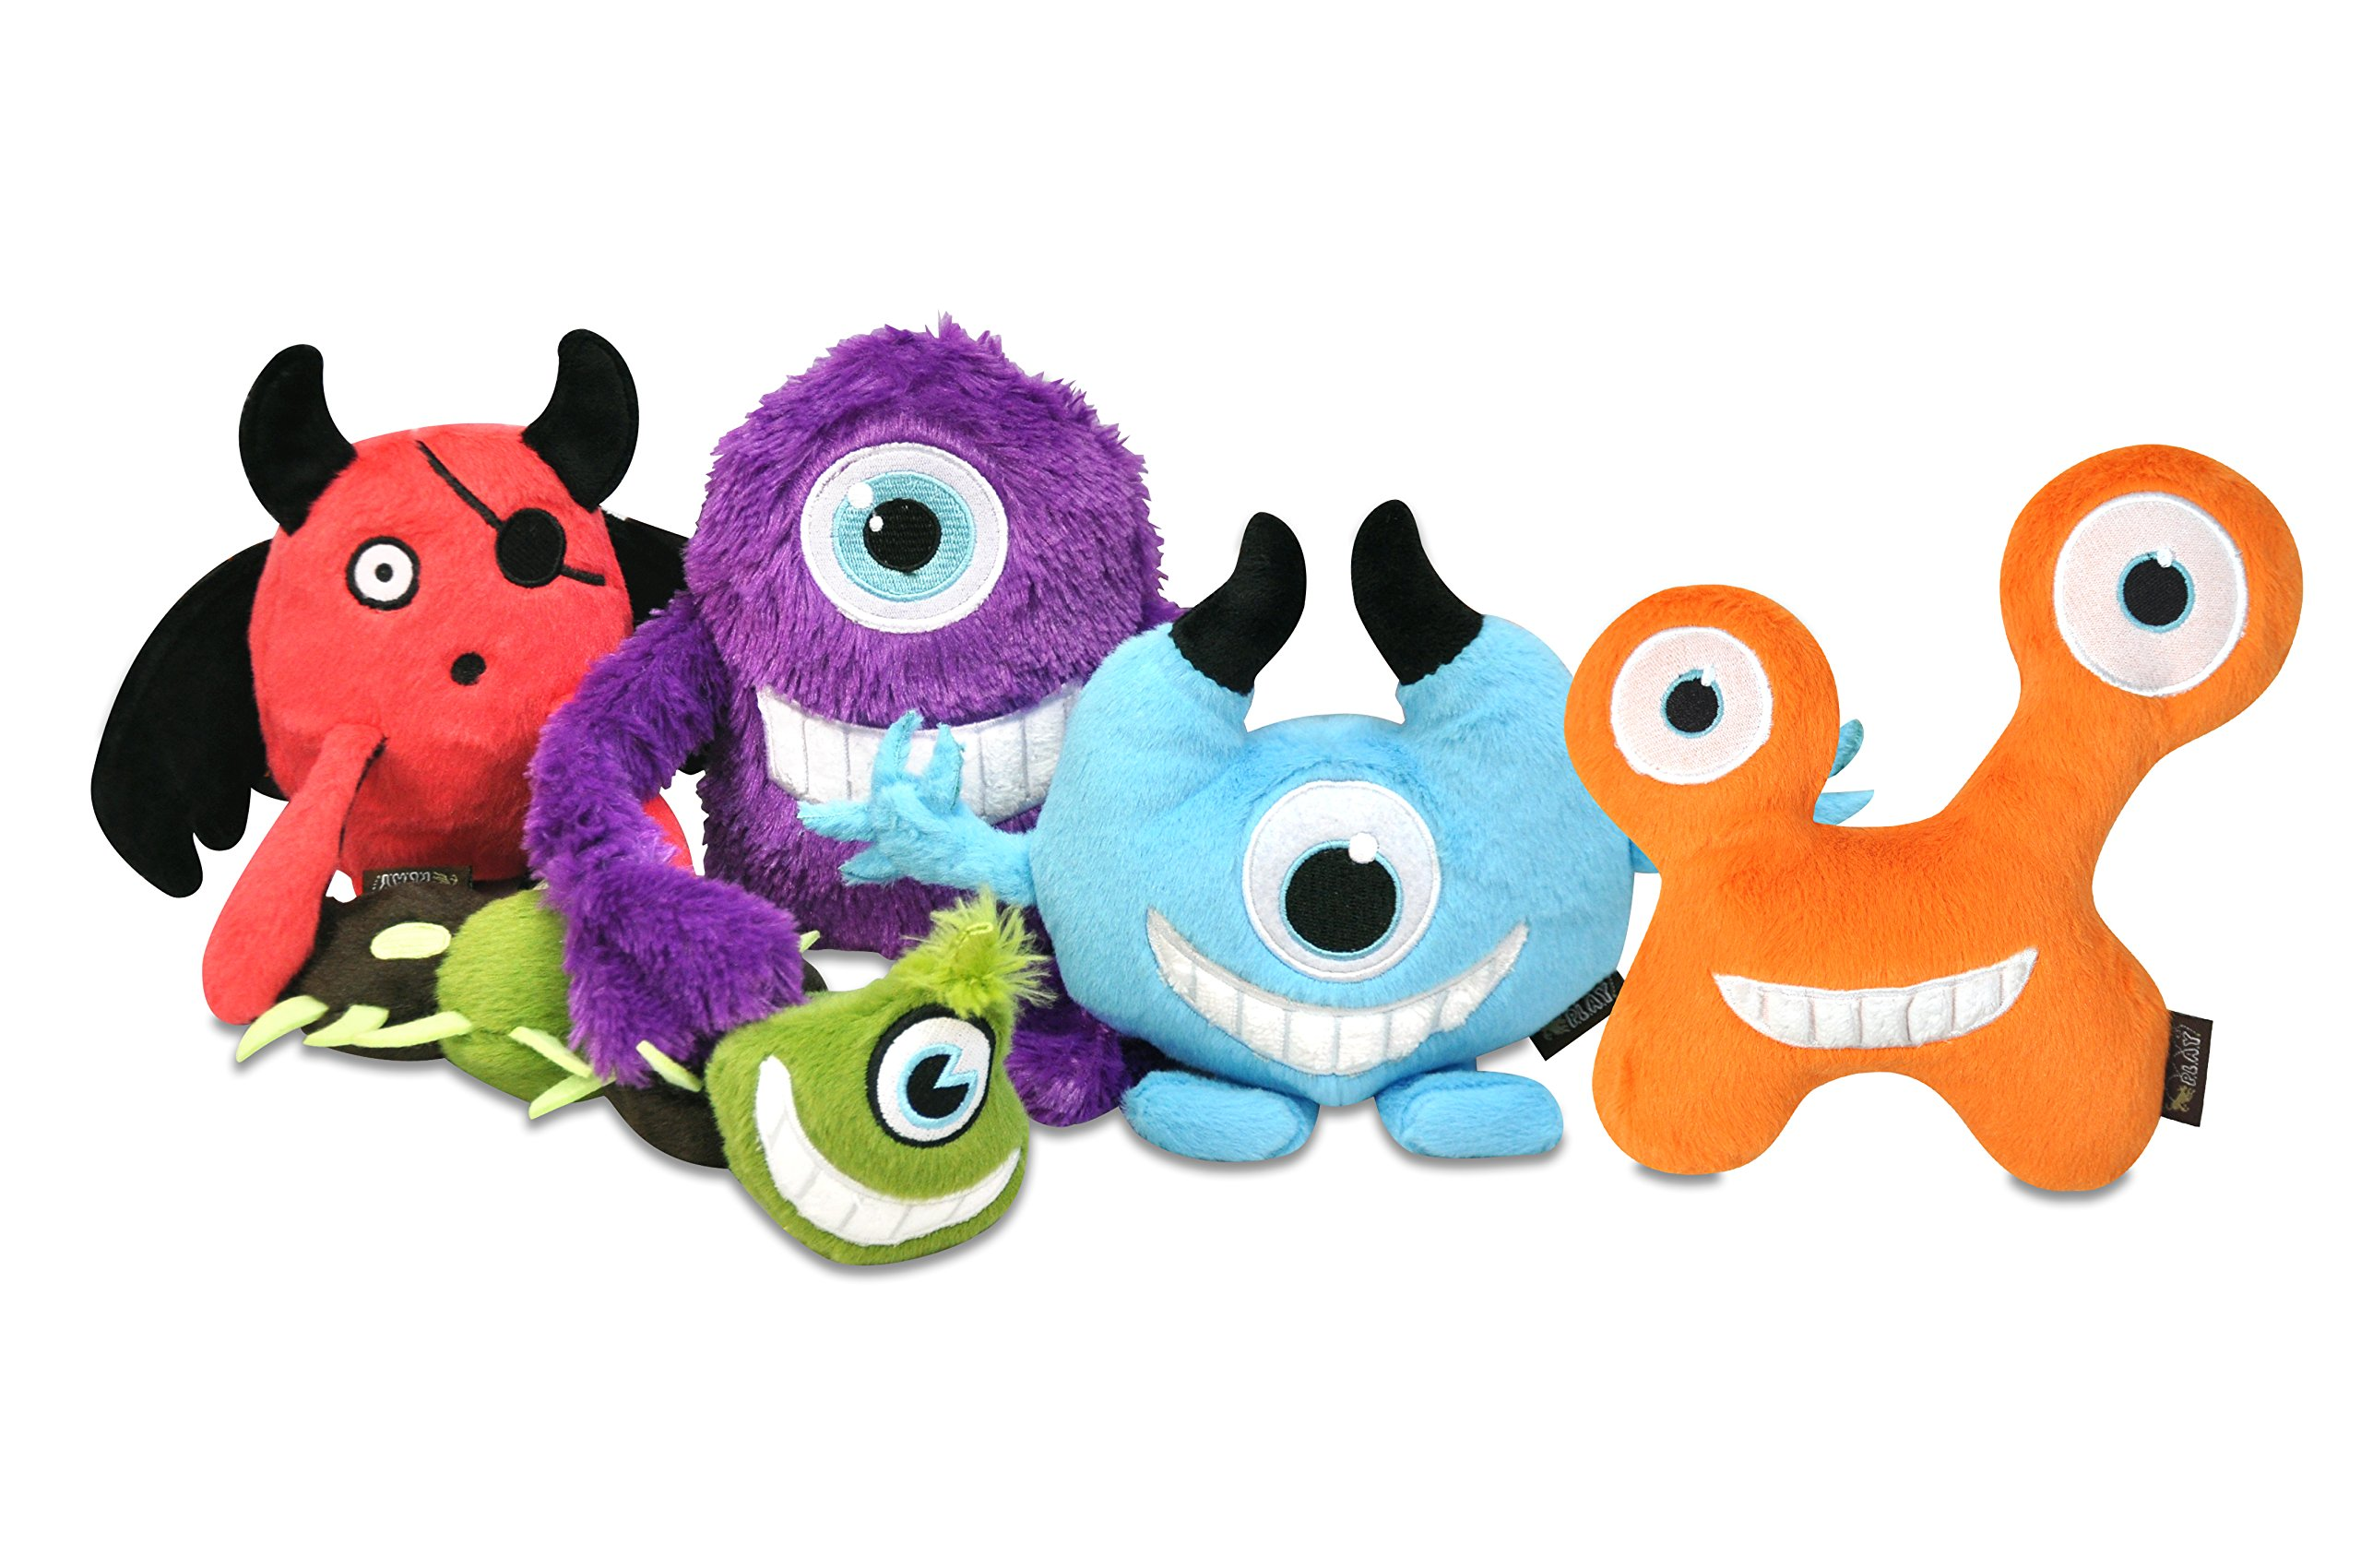 P.L.A.Y. (Pet Lifestyle And You) P.L.A.Y. - Dog Plush Toy with Squeaker Monster Set